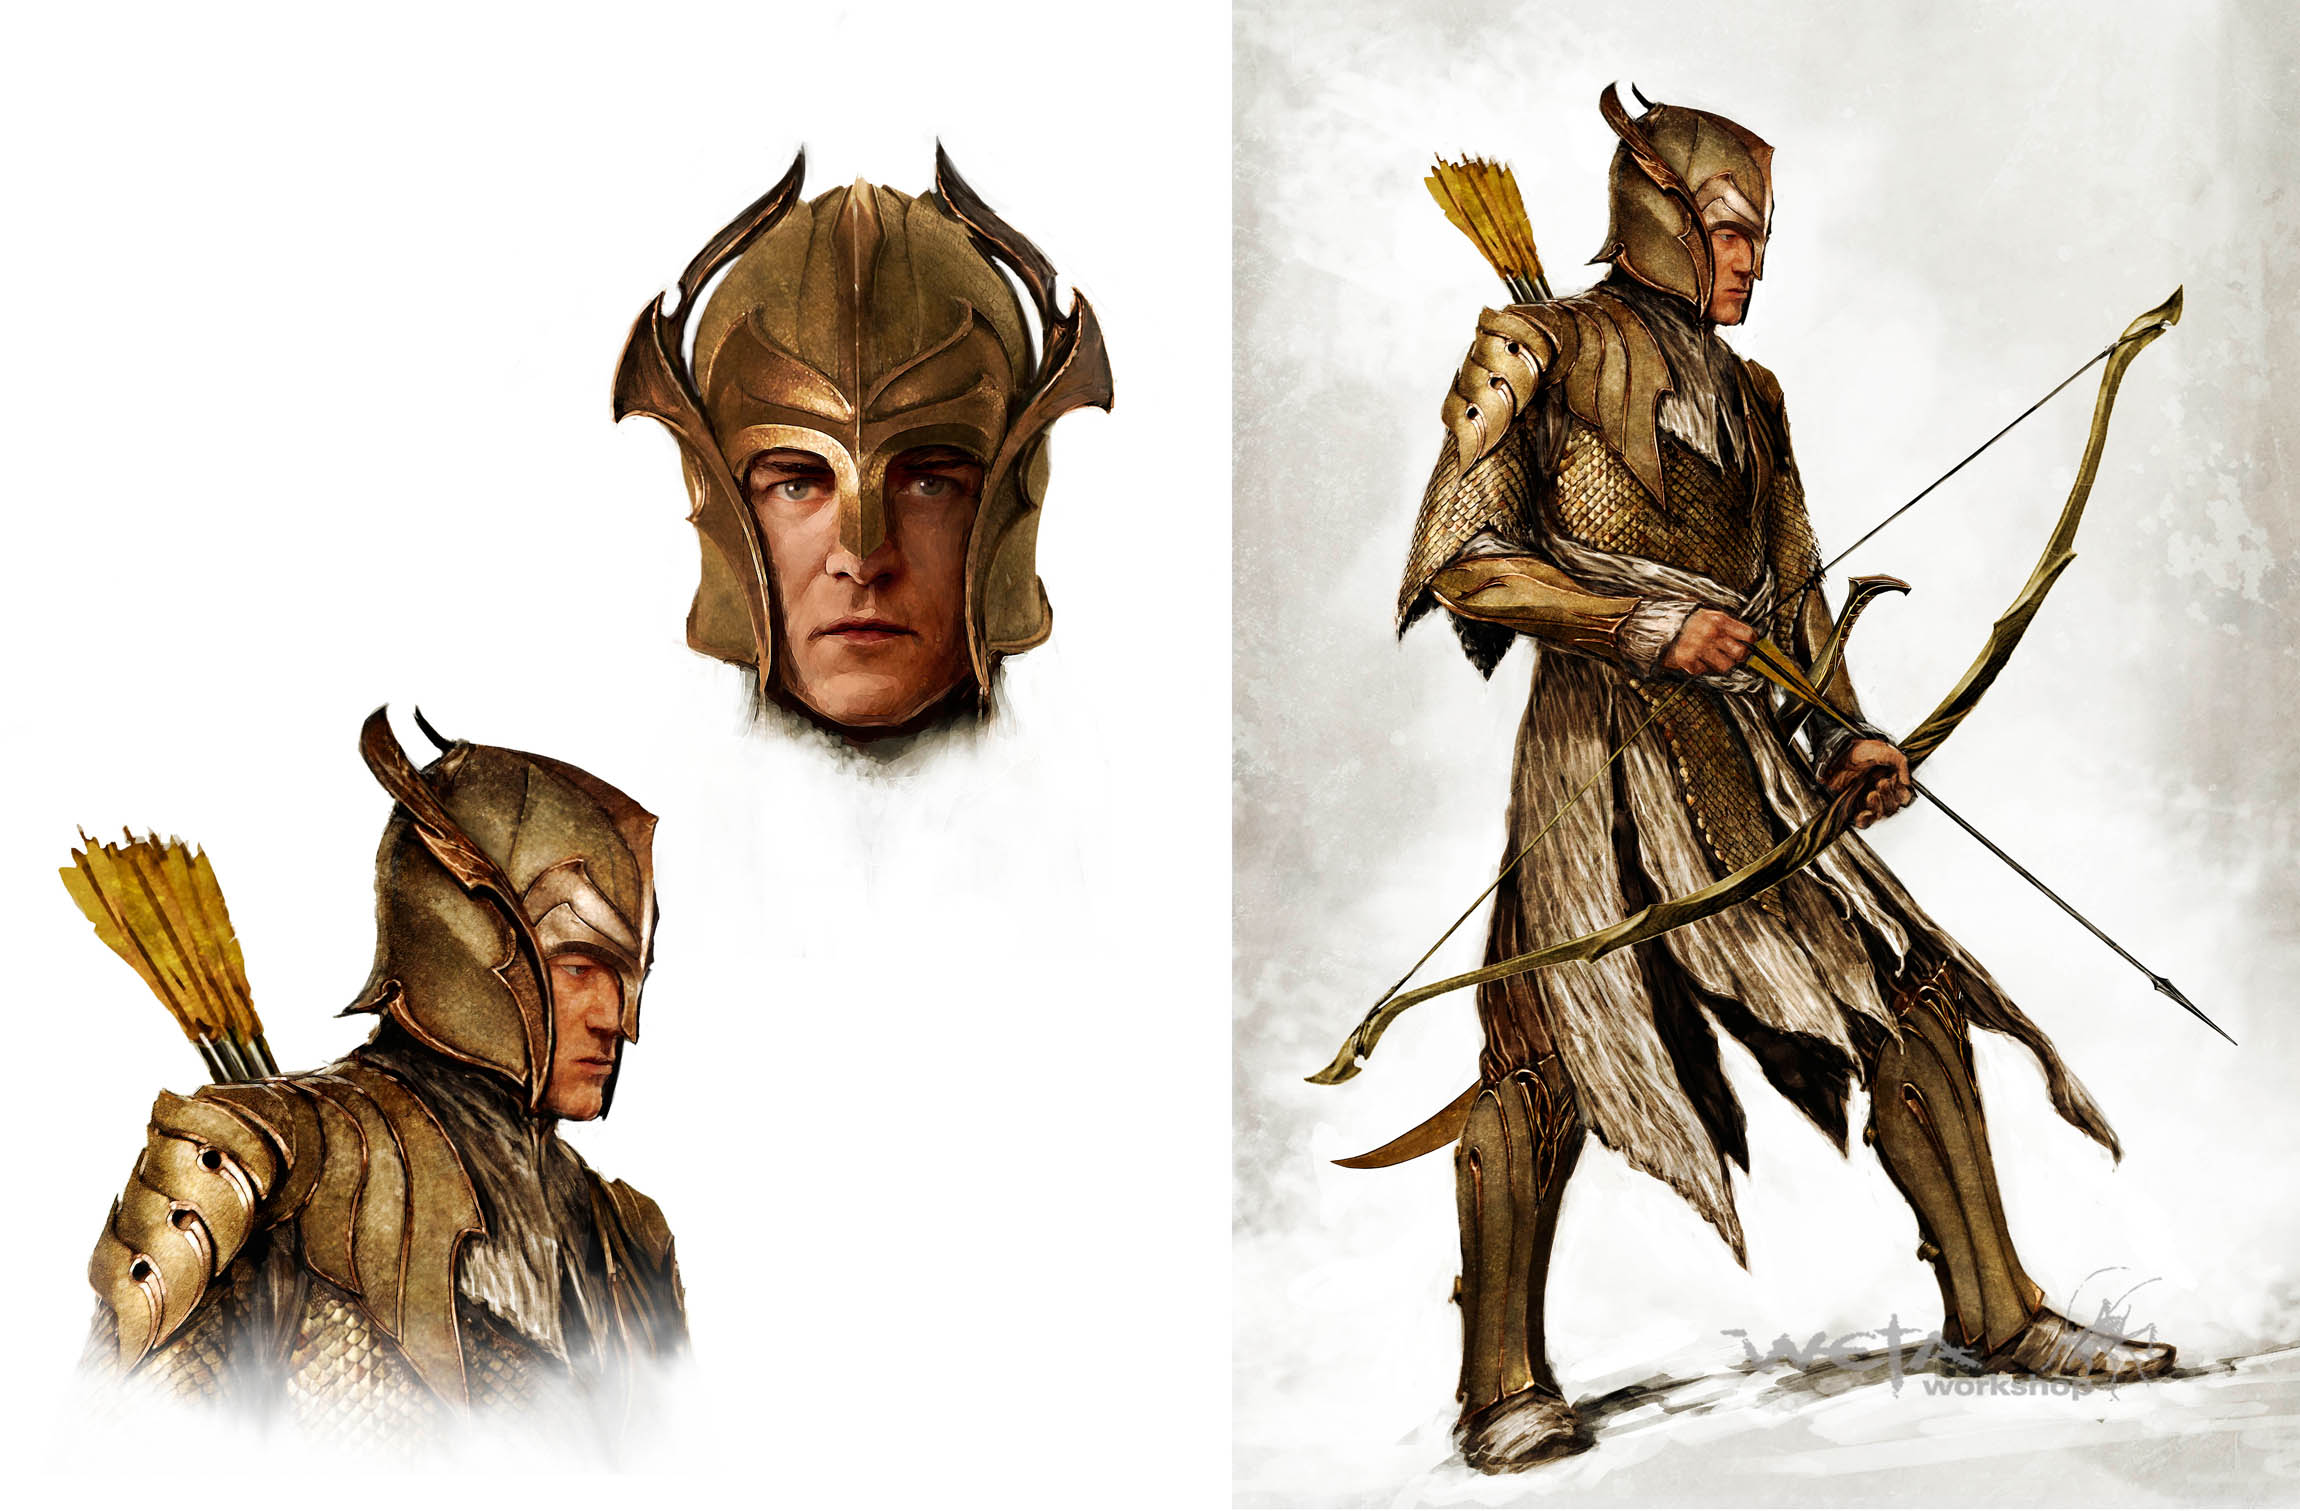 Mirkwood Archer Concept image - LordDainOfIronHills - Mod DB